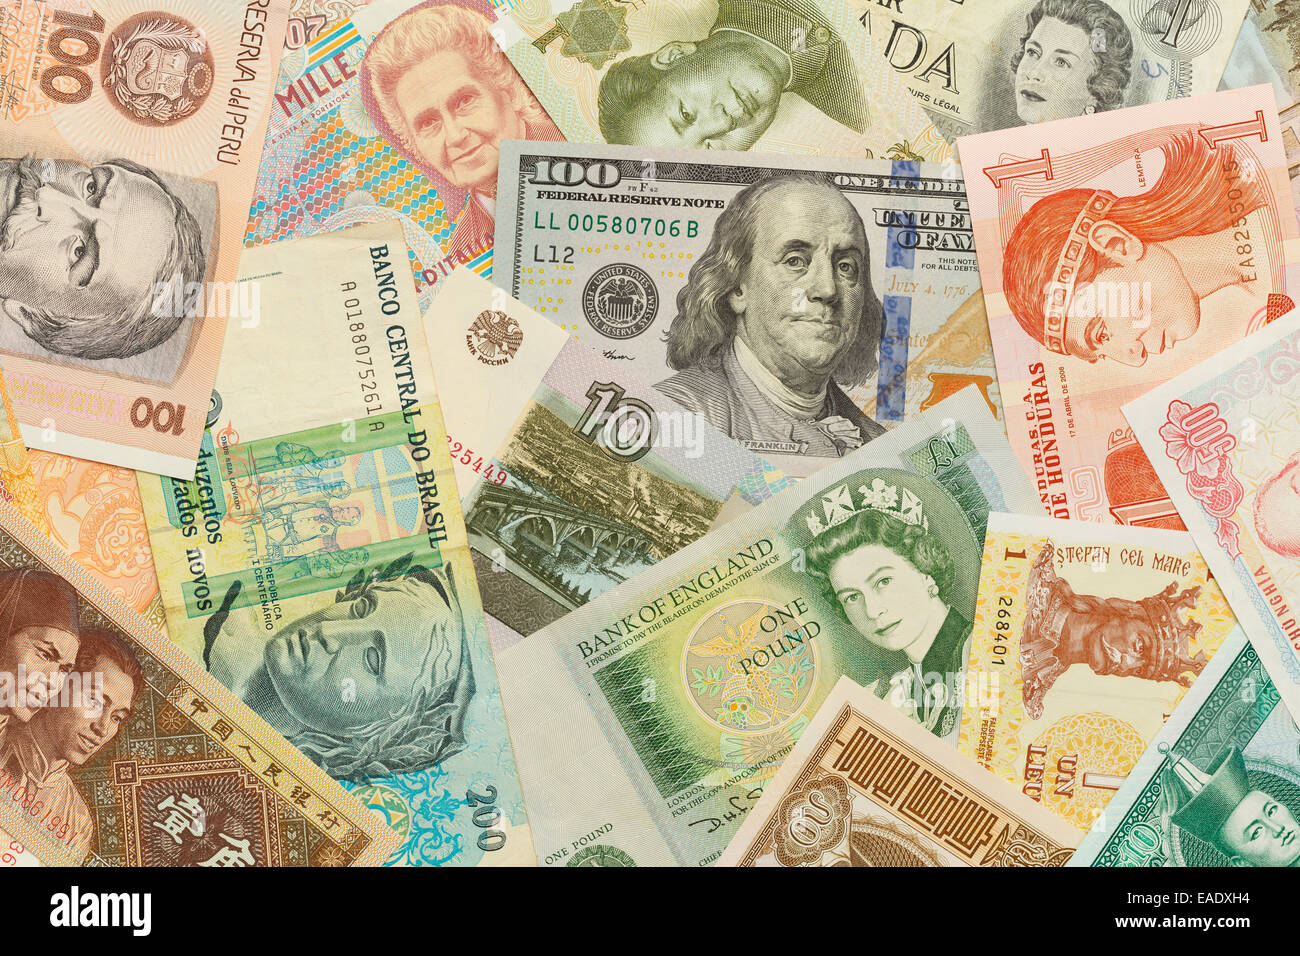 Mixed Up Paper Money Isolated on White Background. - Stock Image